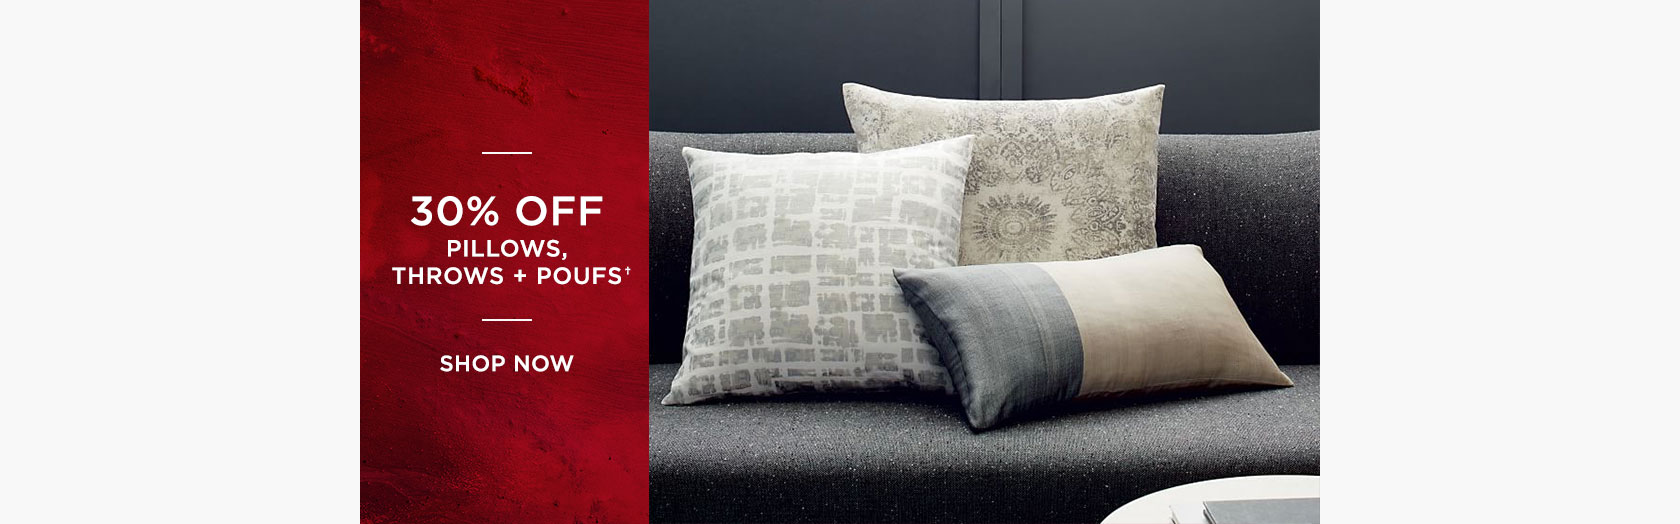 30 Percent Off Pillows, Throws + Poufs